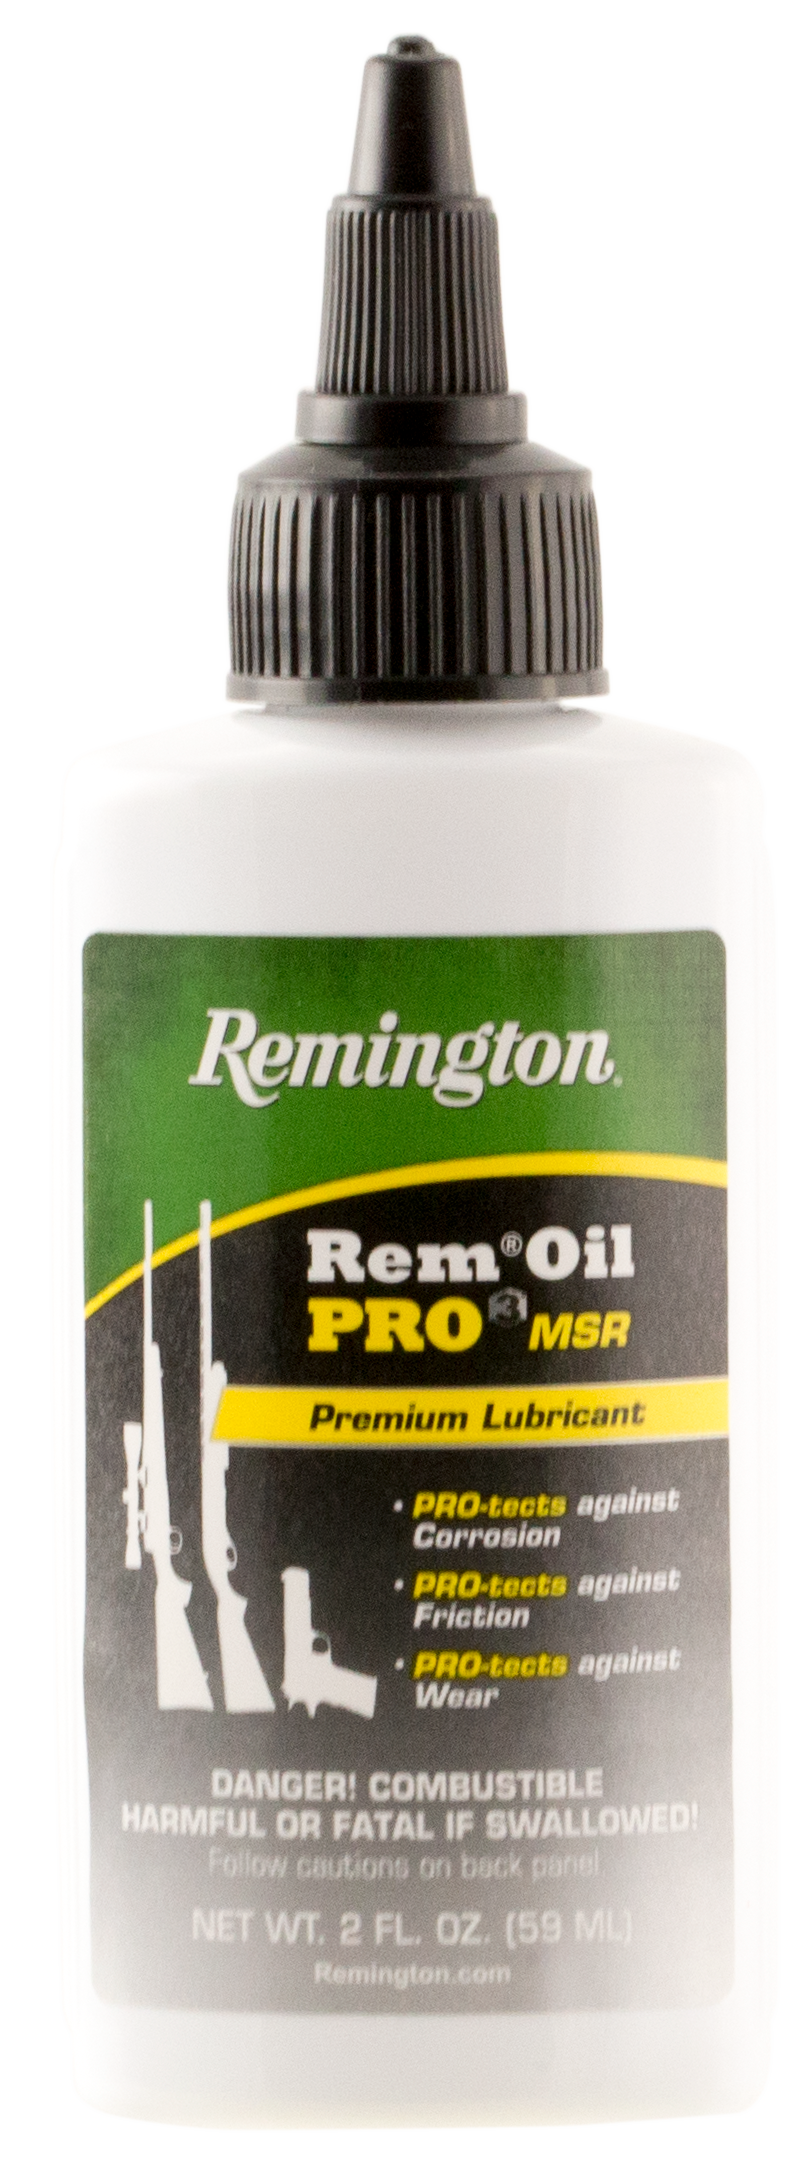 Remington Accessories 18917 Rem Oil Pro3 MSR Lubricant/Protectant 2 oz